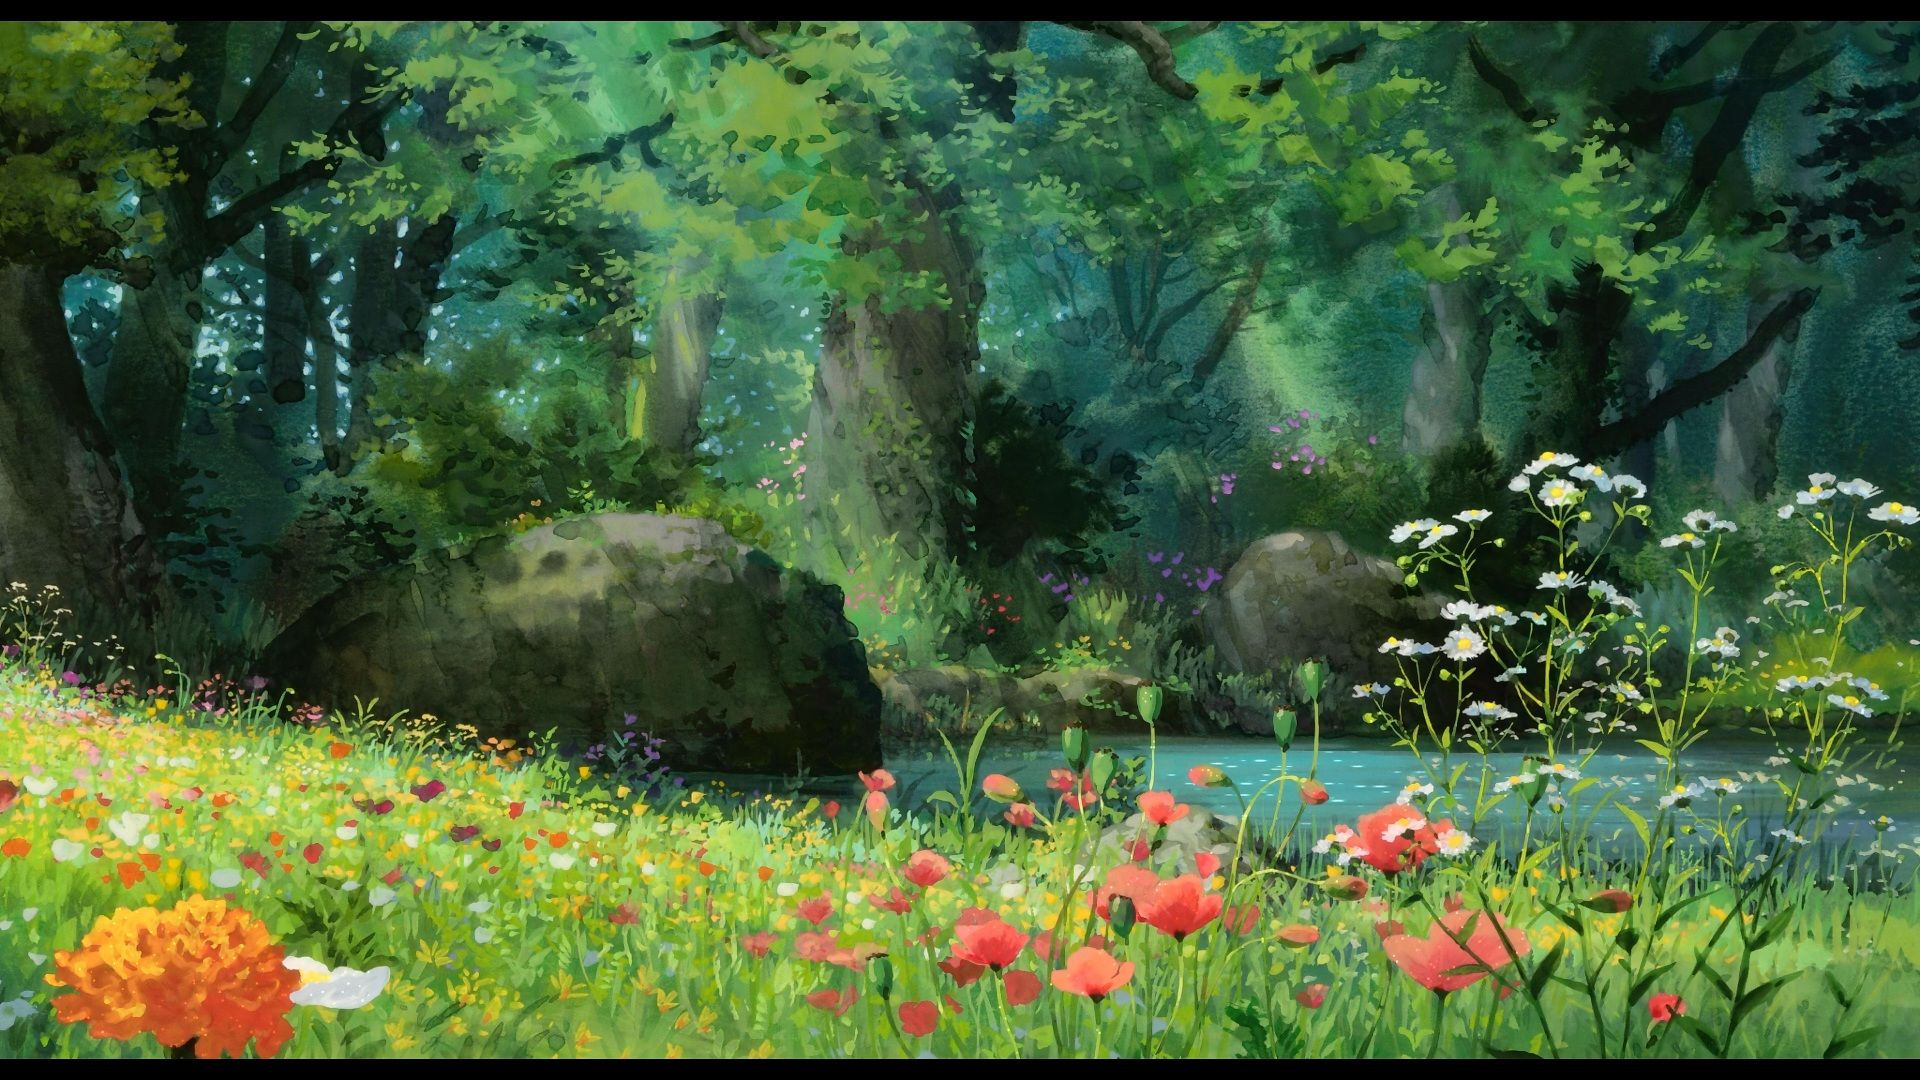 Anime Forest Hd Wallpaper 1920x1080 Anime Scenery Studio Ghibli Background Landscape Poster